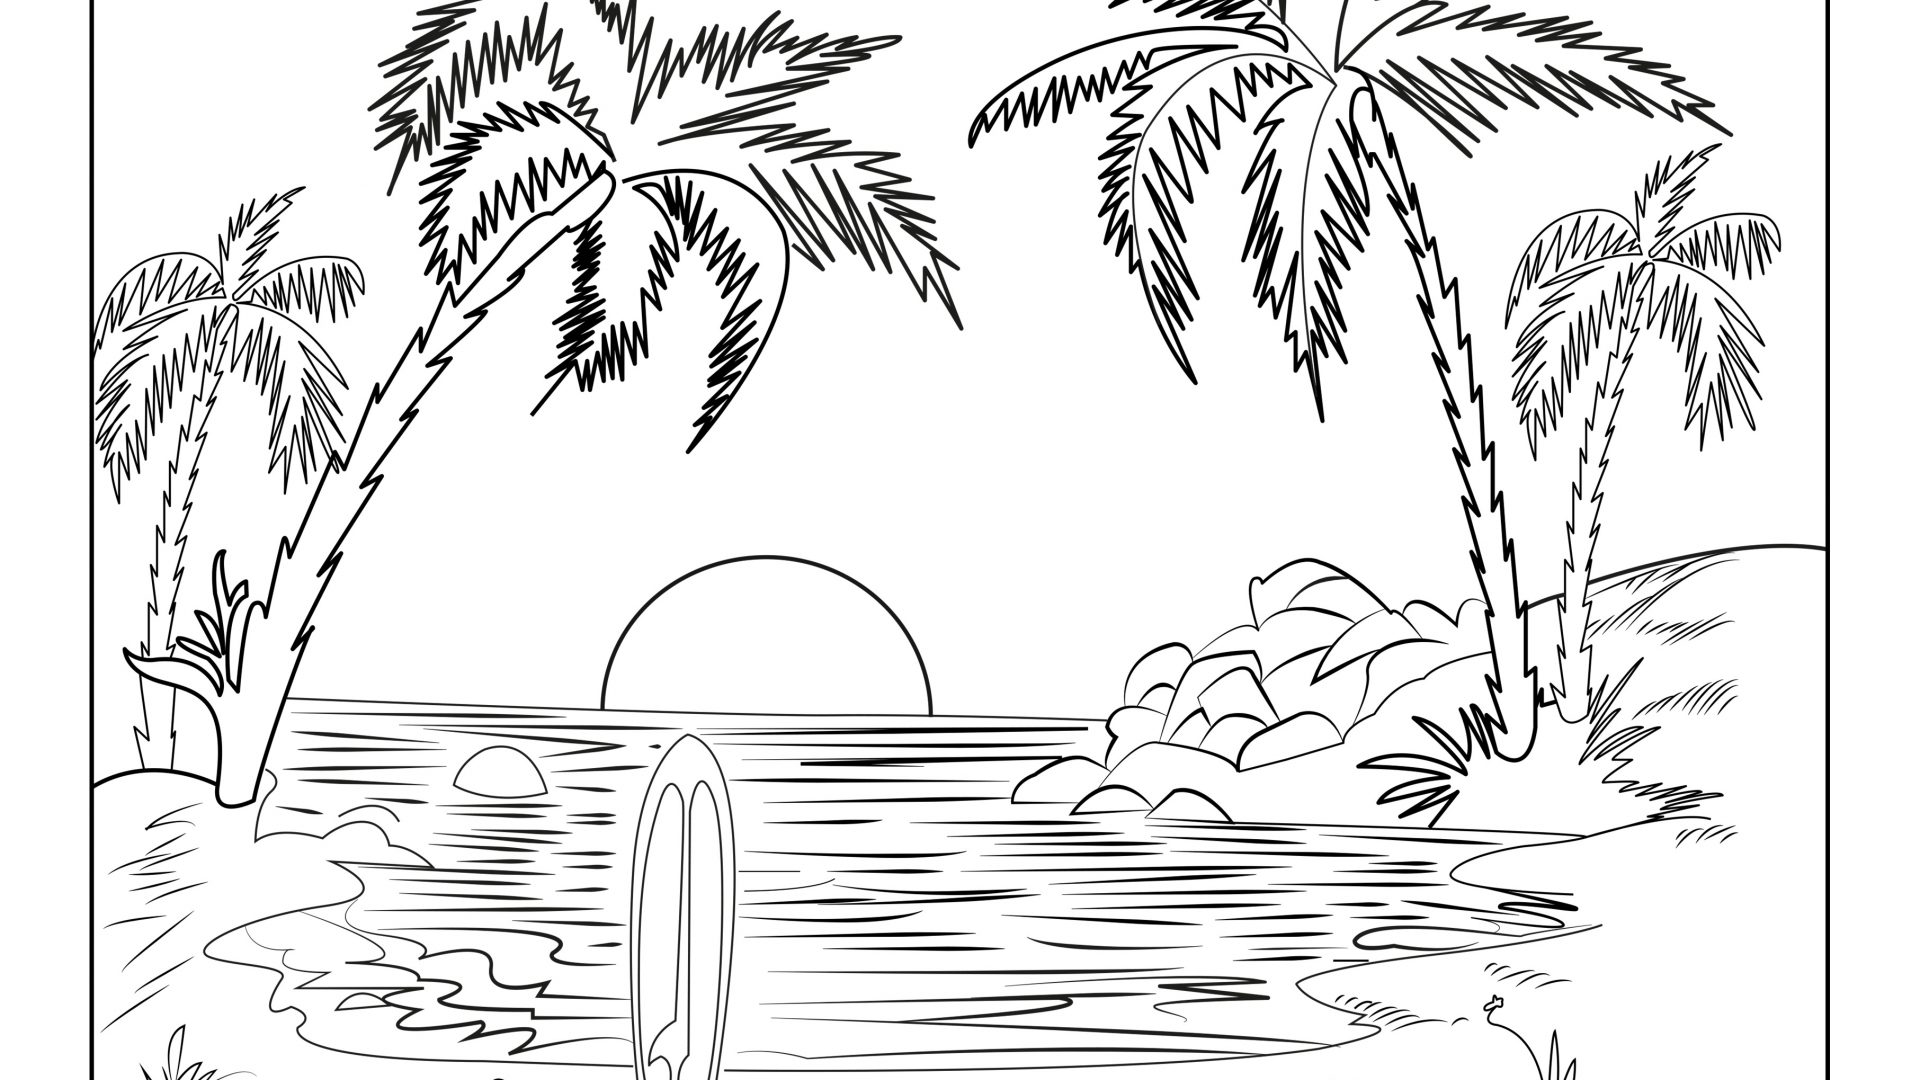 mountain coloring pages mountain coloring pages coloring pages to download and print mountain coloring pages